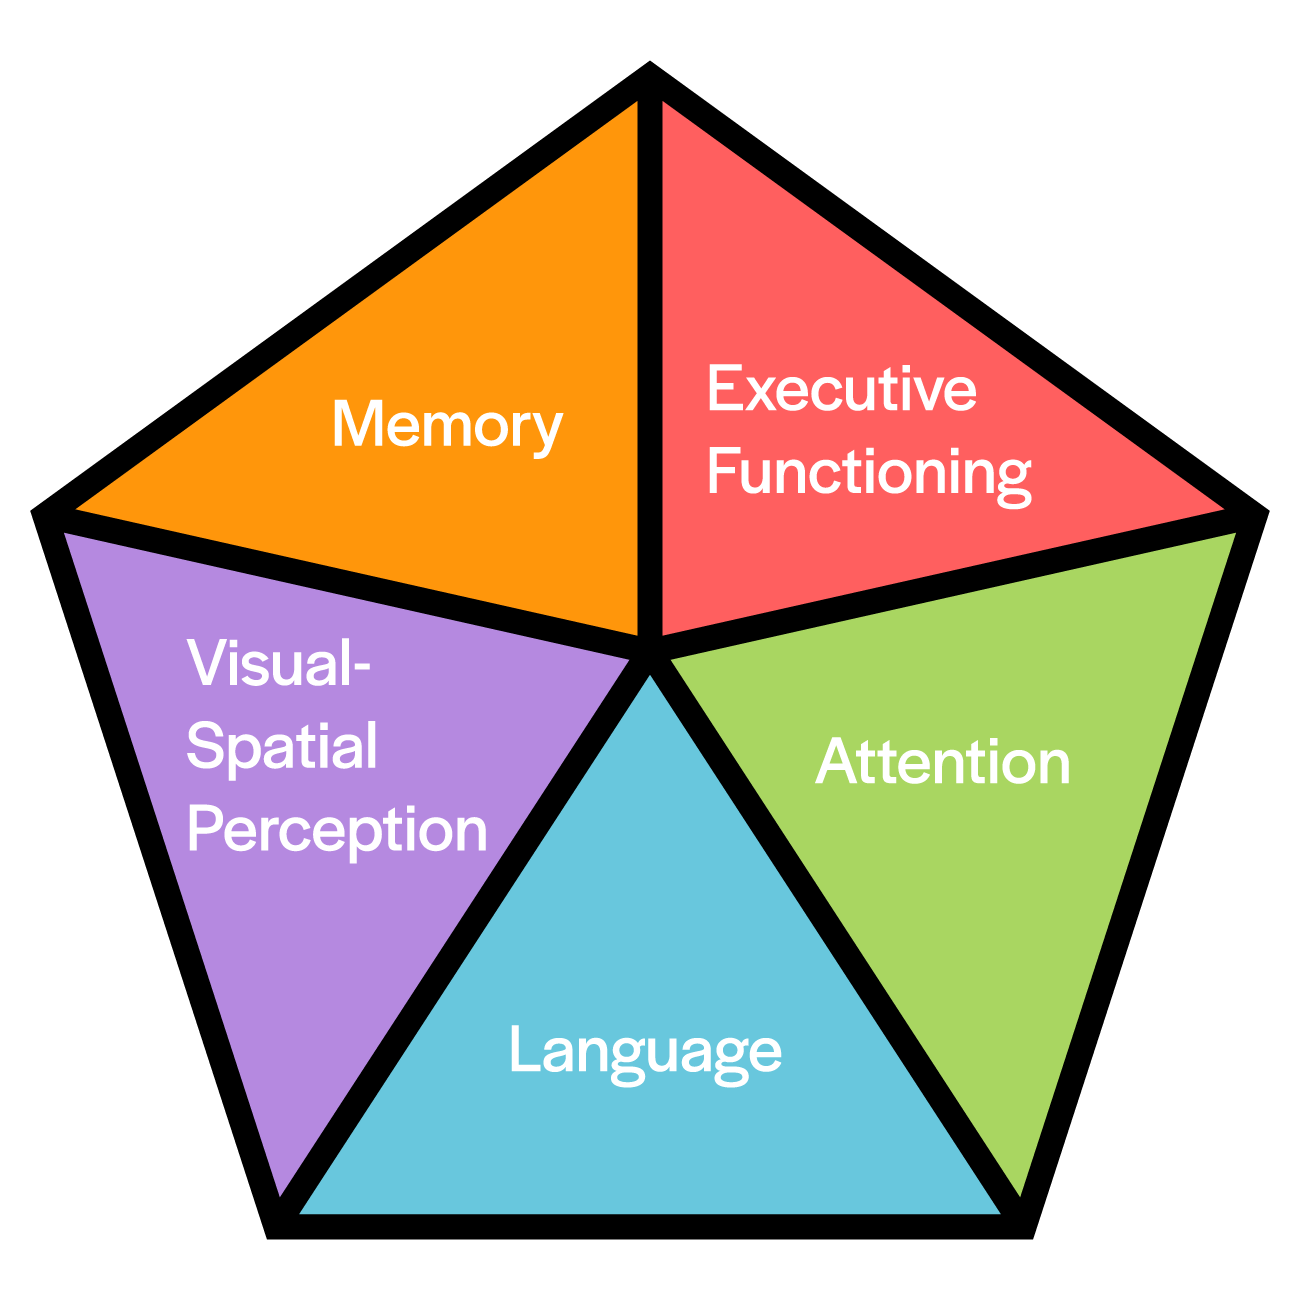 Pentagon diagram listing the five cognitive domains: executive functioning, attention, language, visual-spacial perception, and memory.